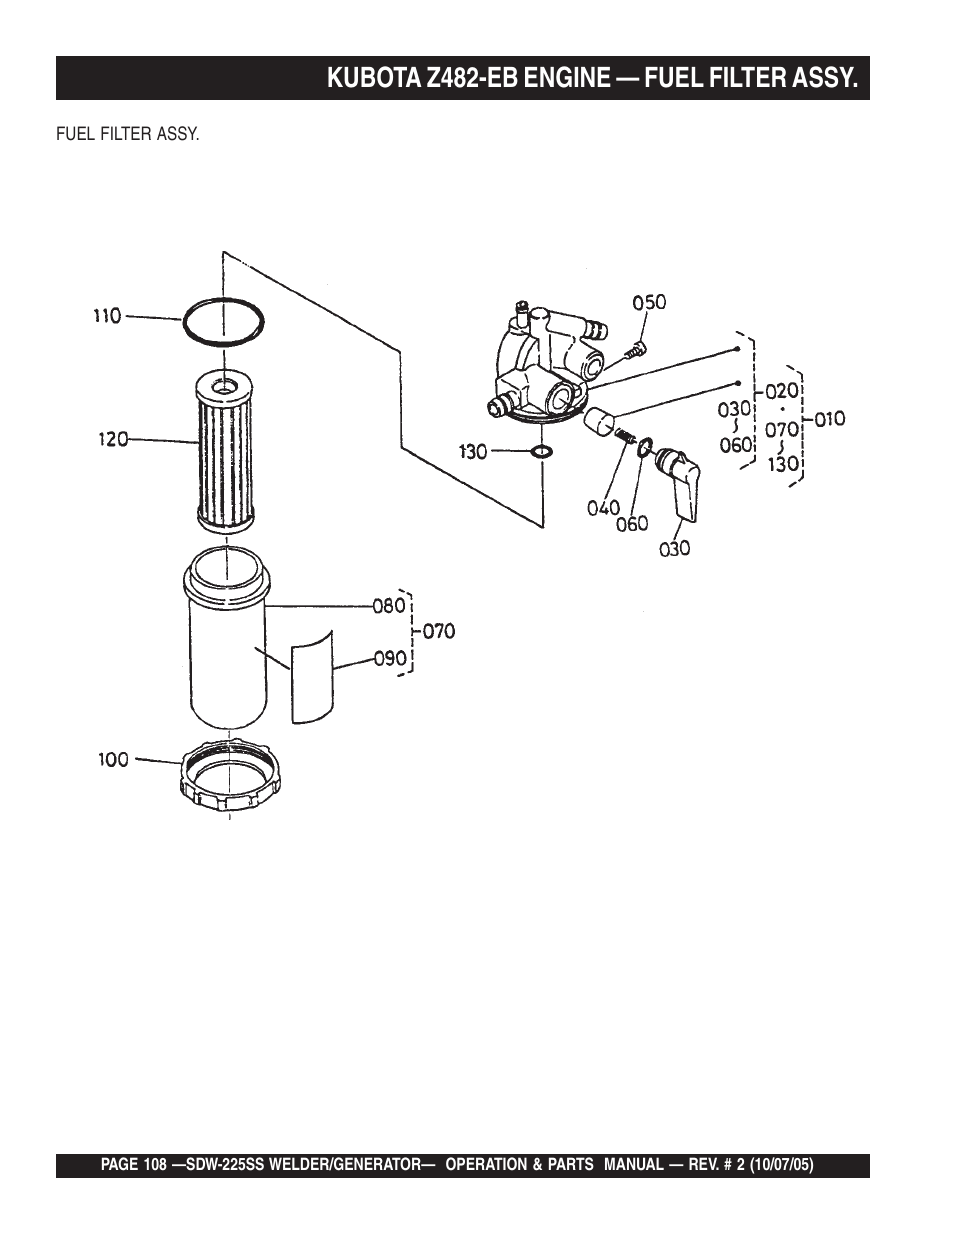 kubota z482-eb engine — fuel filter assy | multiquip sdw225ss user manual |  page 108 / 146